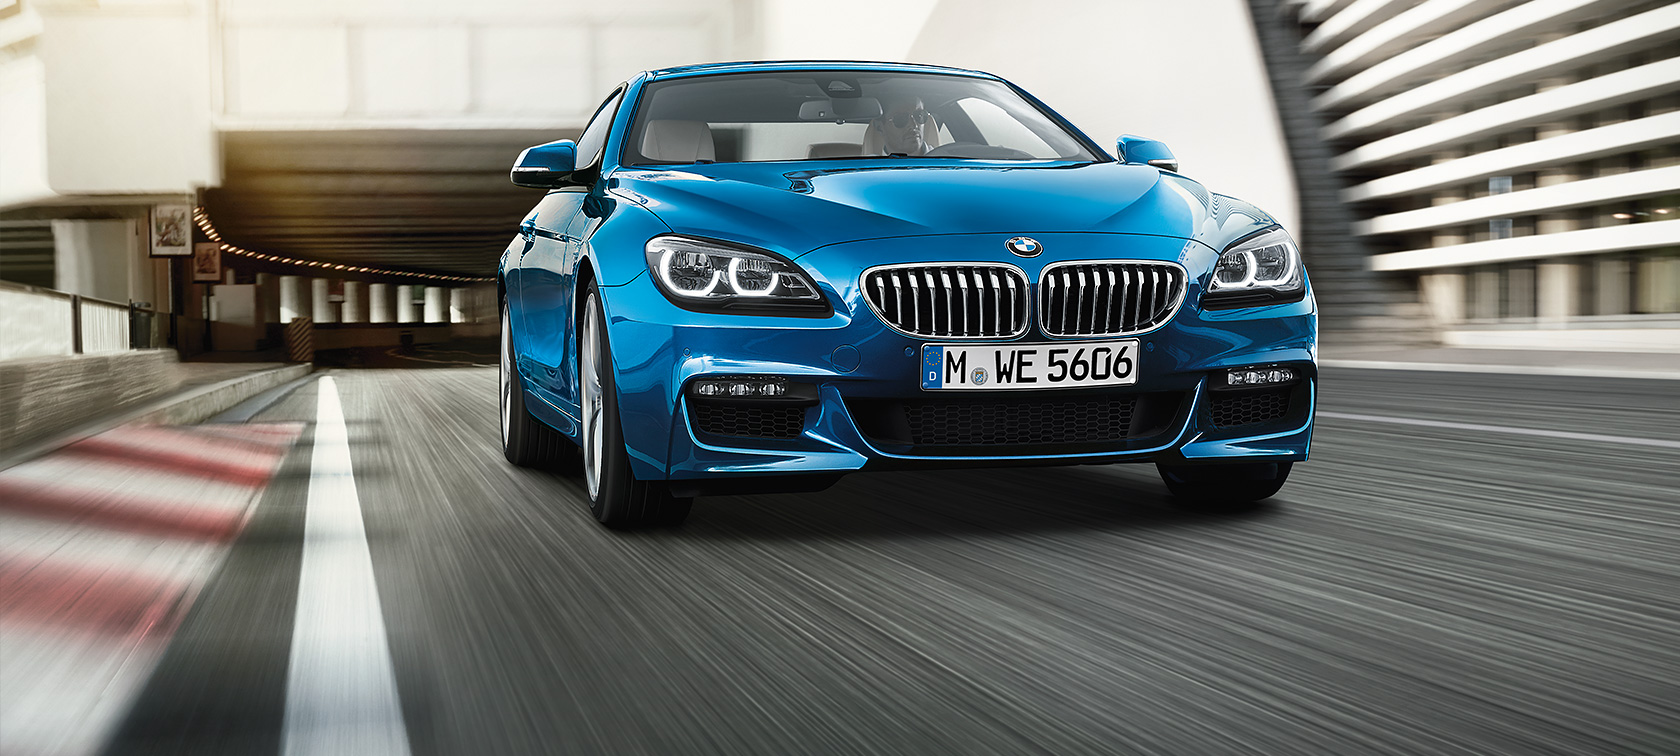 Equipment for the BMW 6 Series Coupé